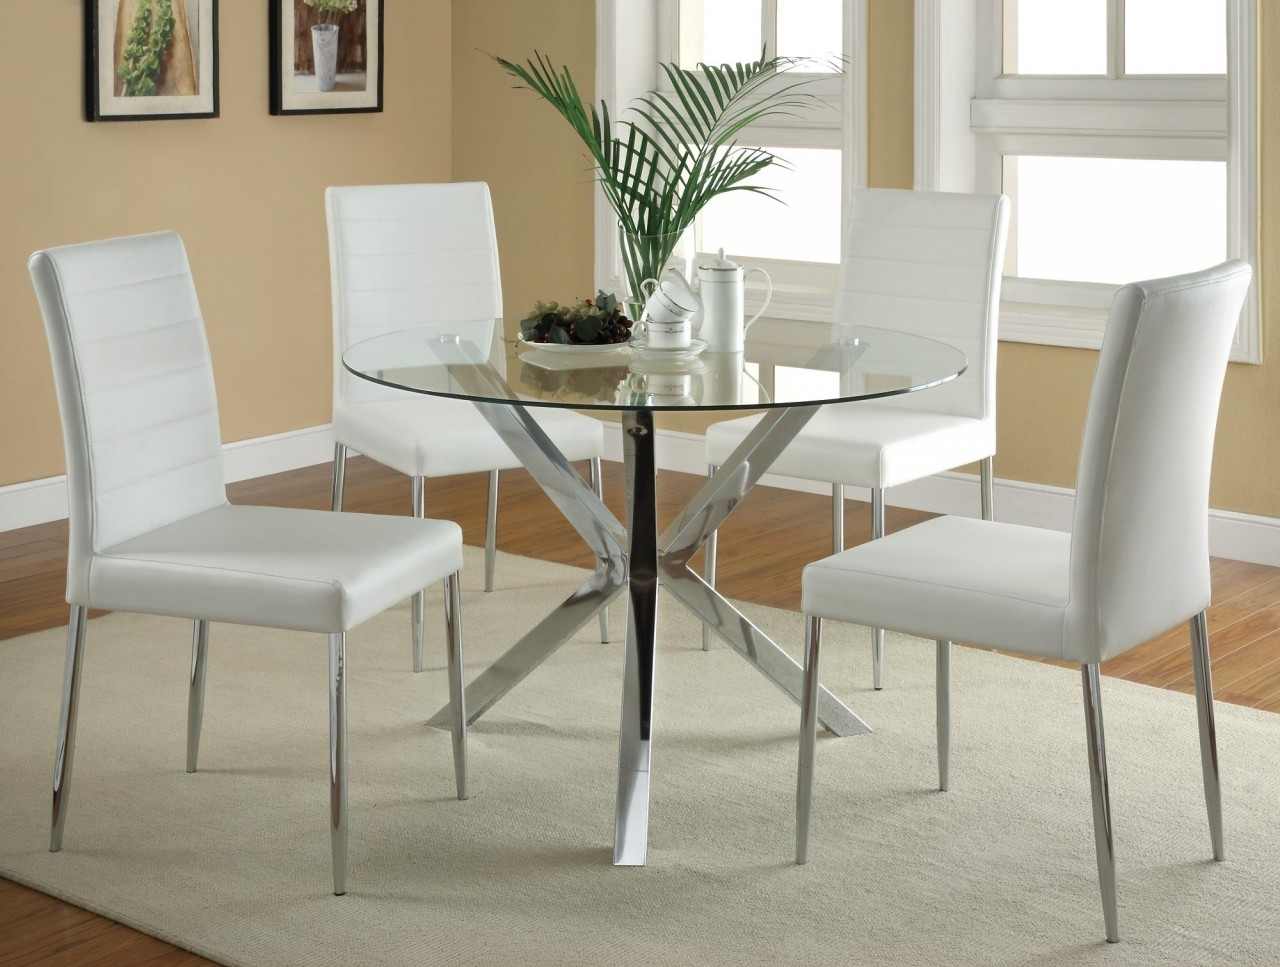 Preferred Modern Round Glass Dining Table With Chrome Polished Metal Leg As Regarding Glass Dining Tables And Leather Chairs (View 20 of 25)